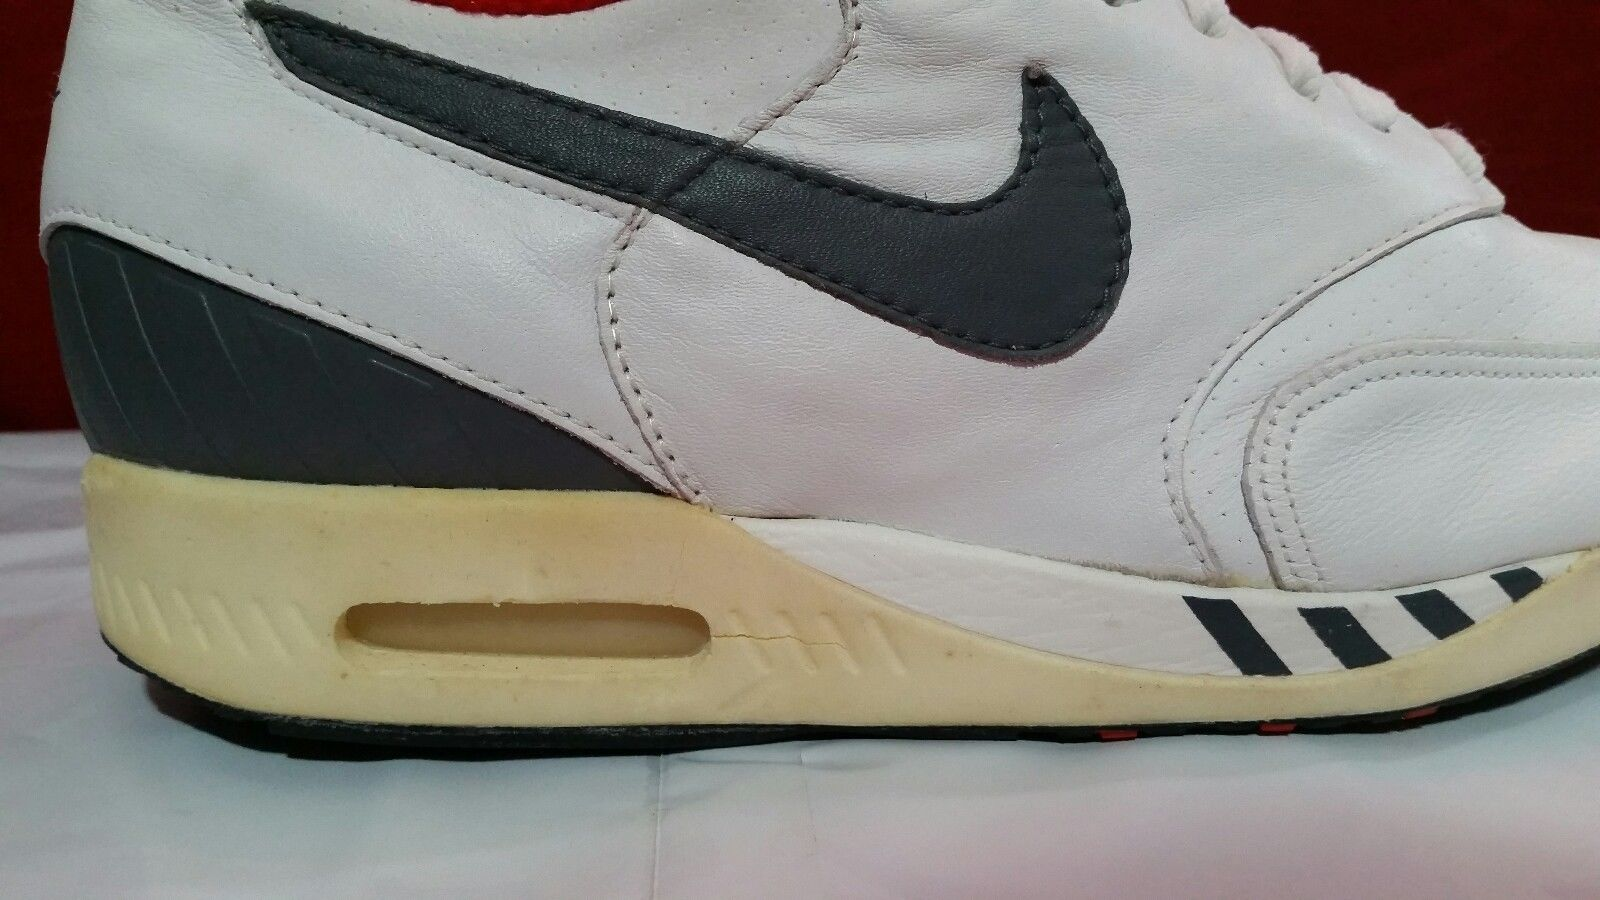 new arrival 47853 e8480 A beautiful CW of the Nike Air Walker popped up on ebay. Another great  example of sneaker evolution.